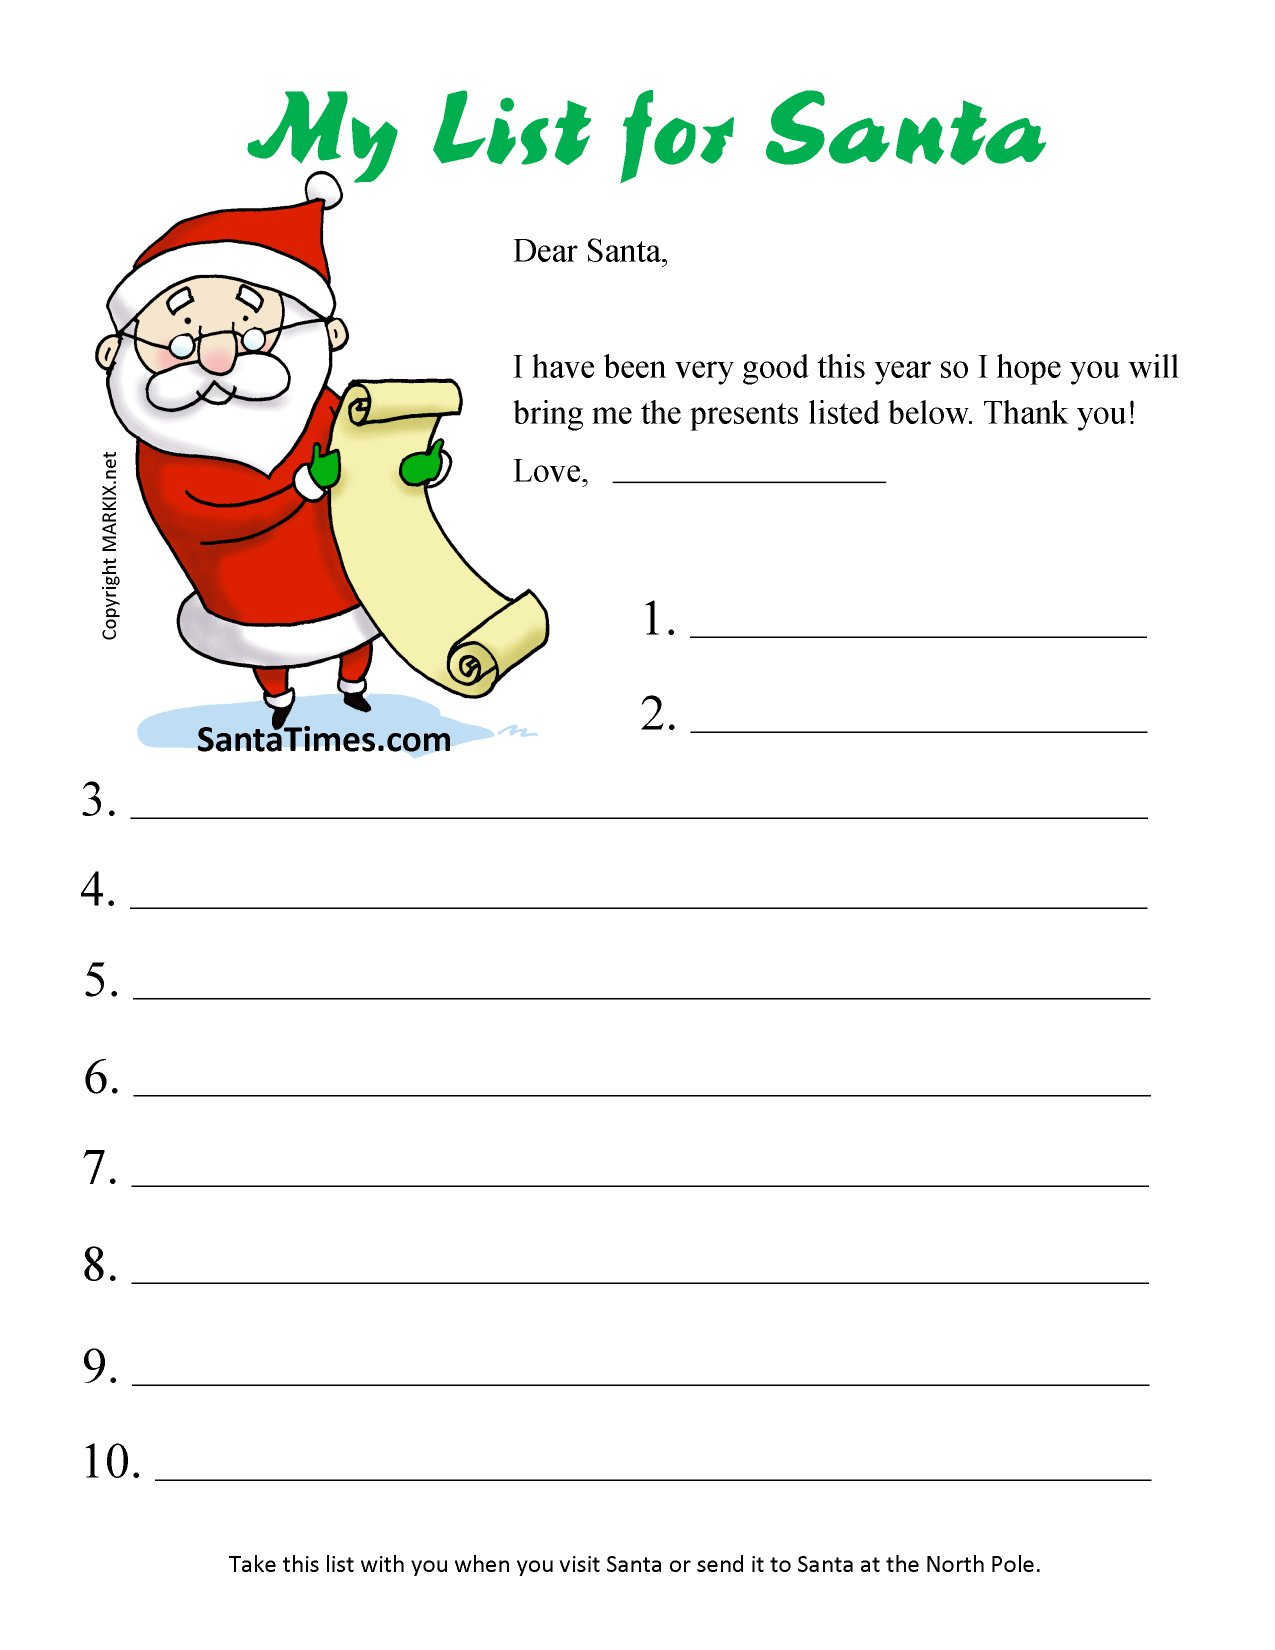 6 Images of Santa Printable Wish List